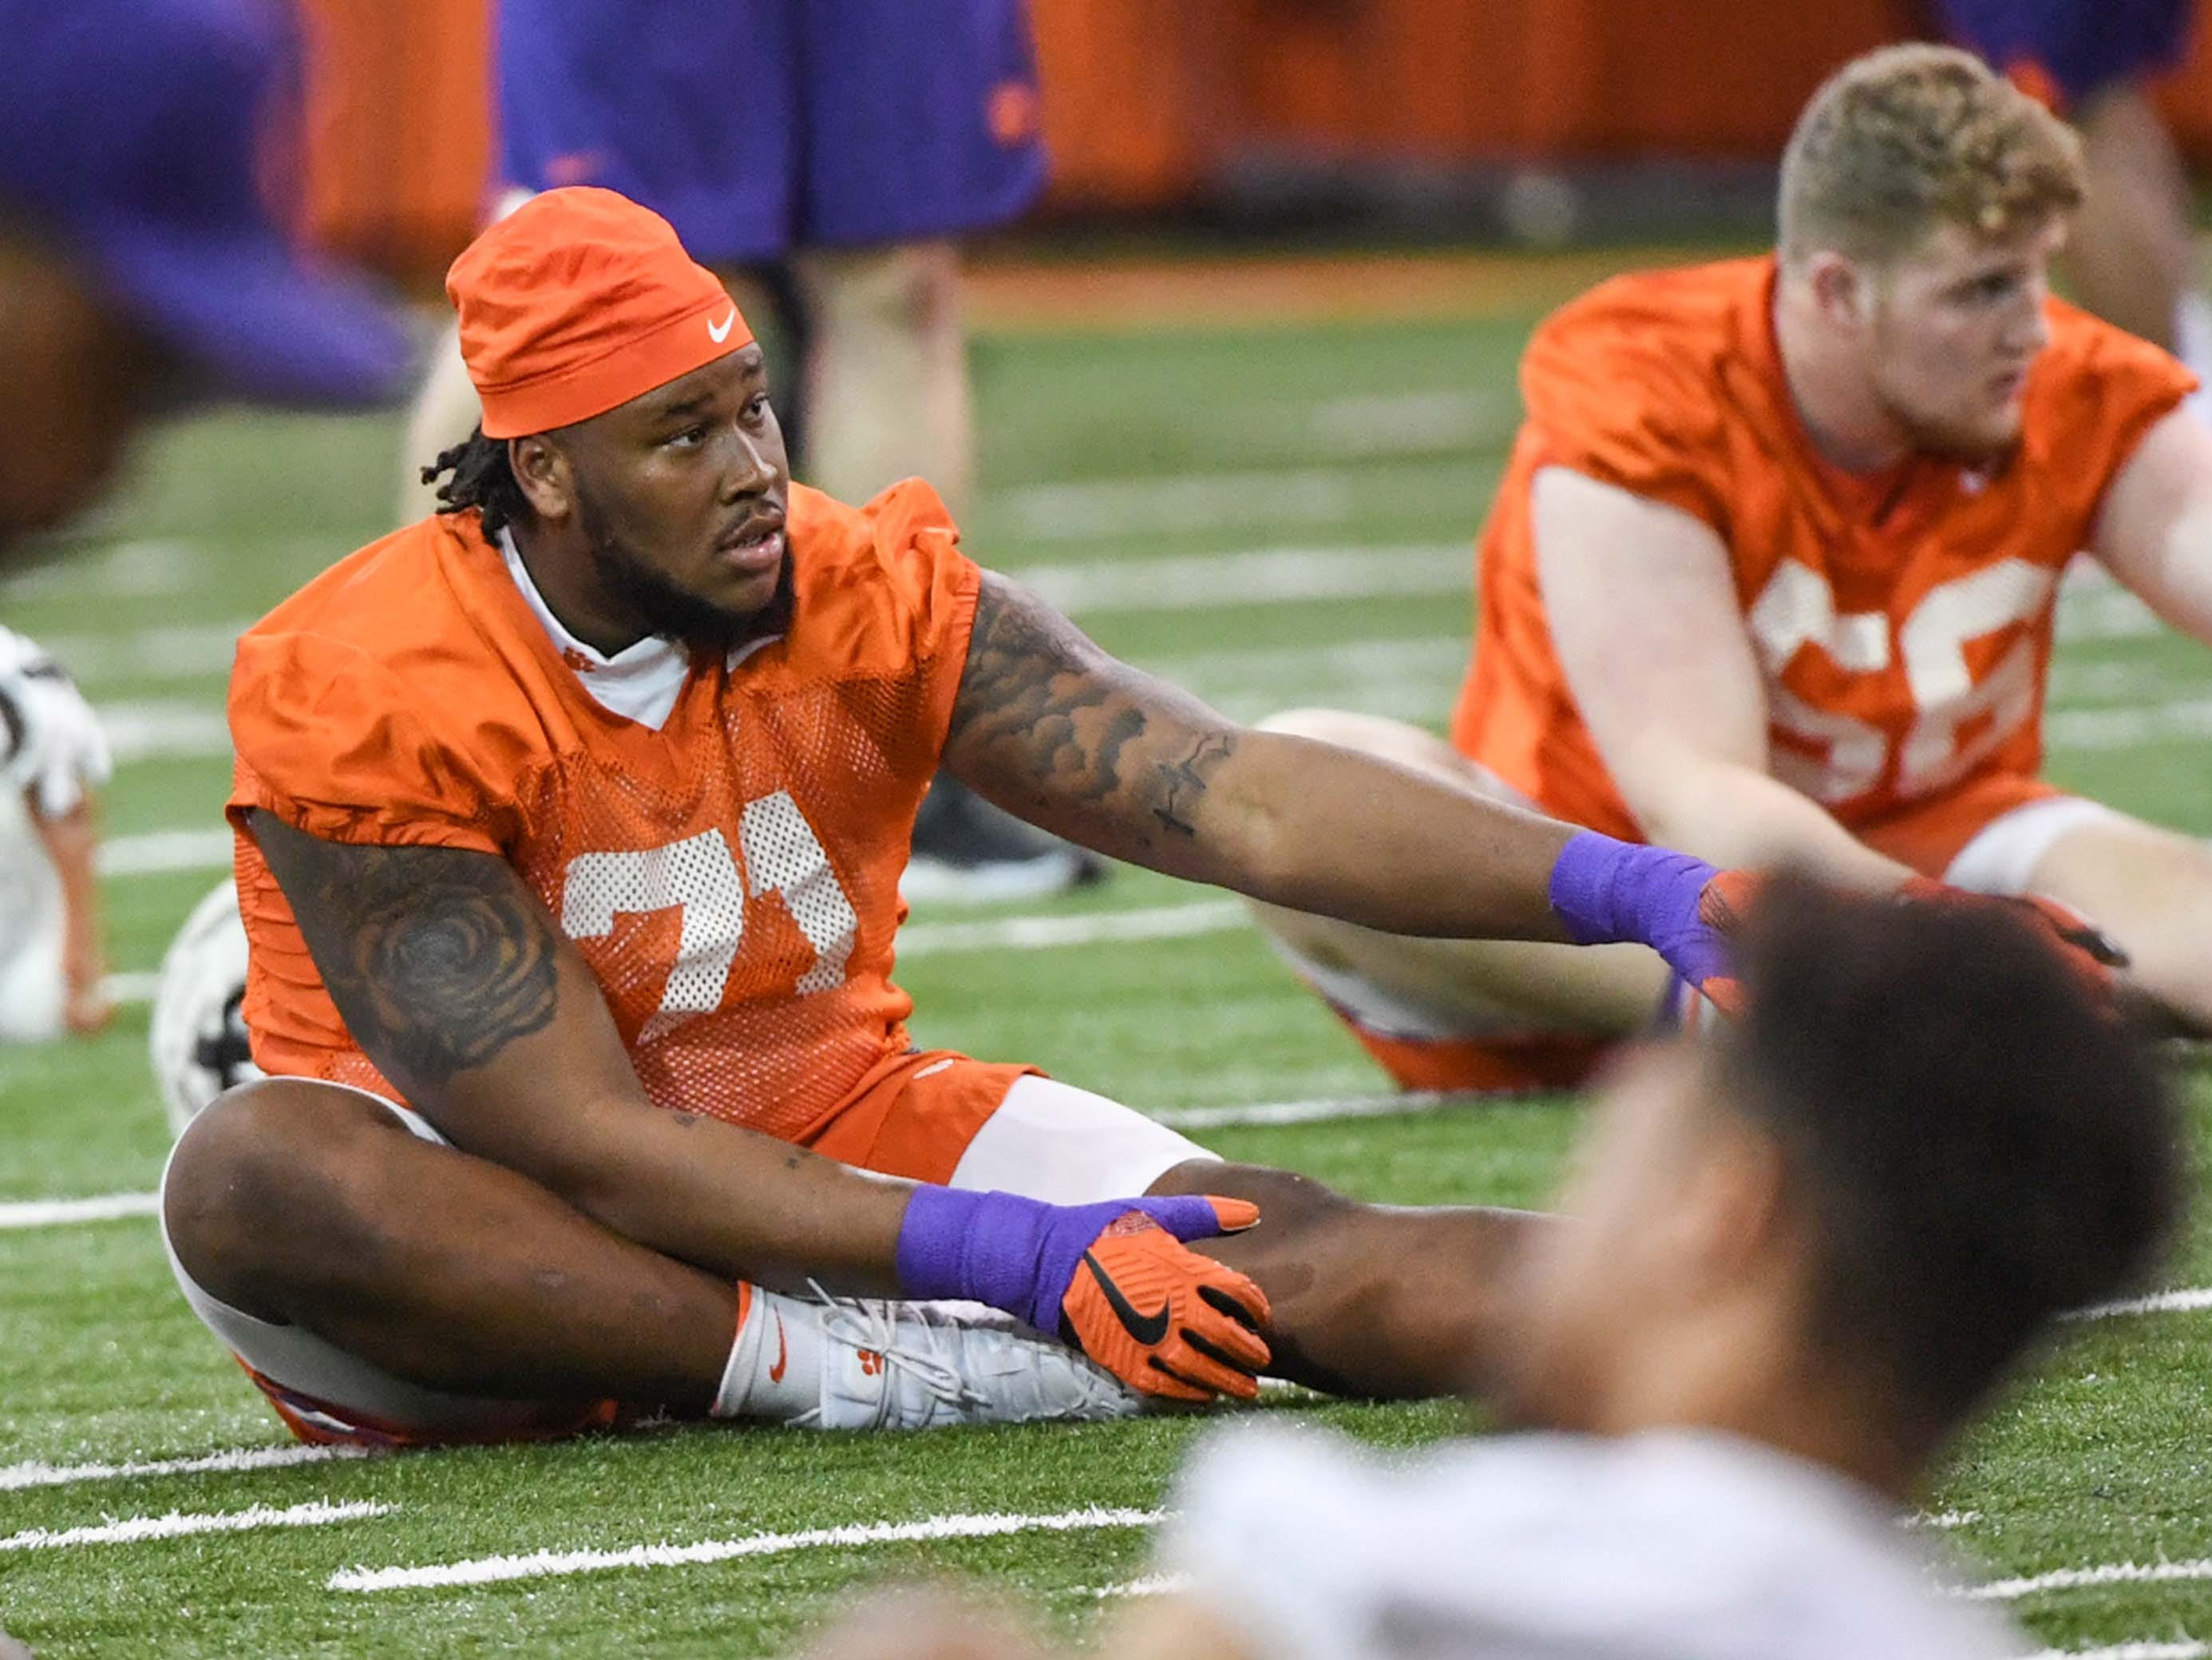 Clemson offensive lineman Jordan McFadden (71) stretches during practice at the Poe Indoor Facility in Clemson Friday.